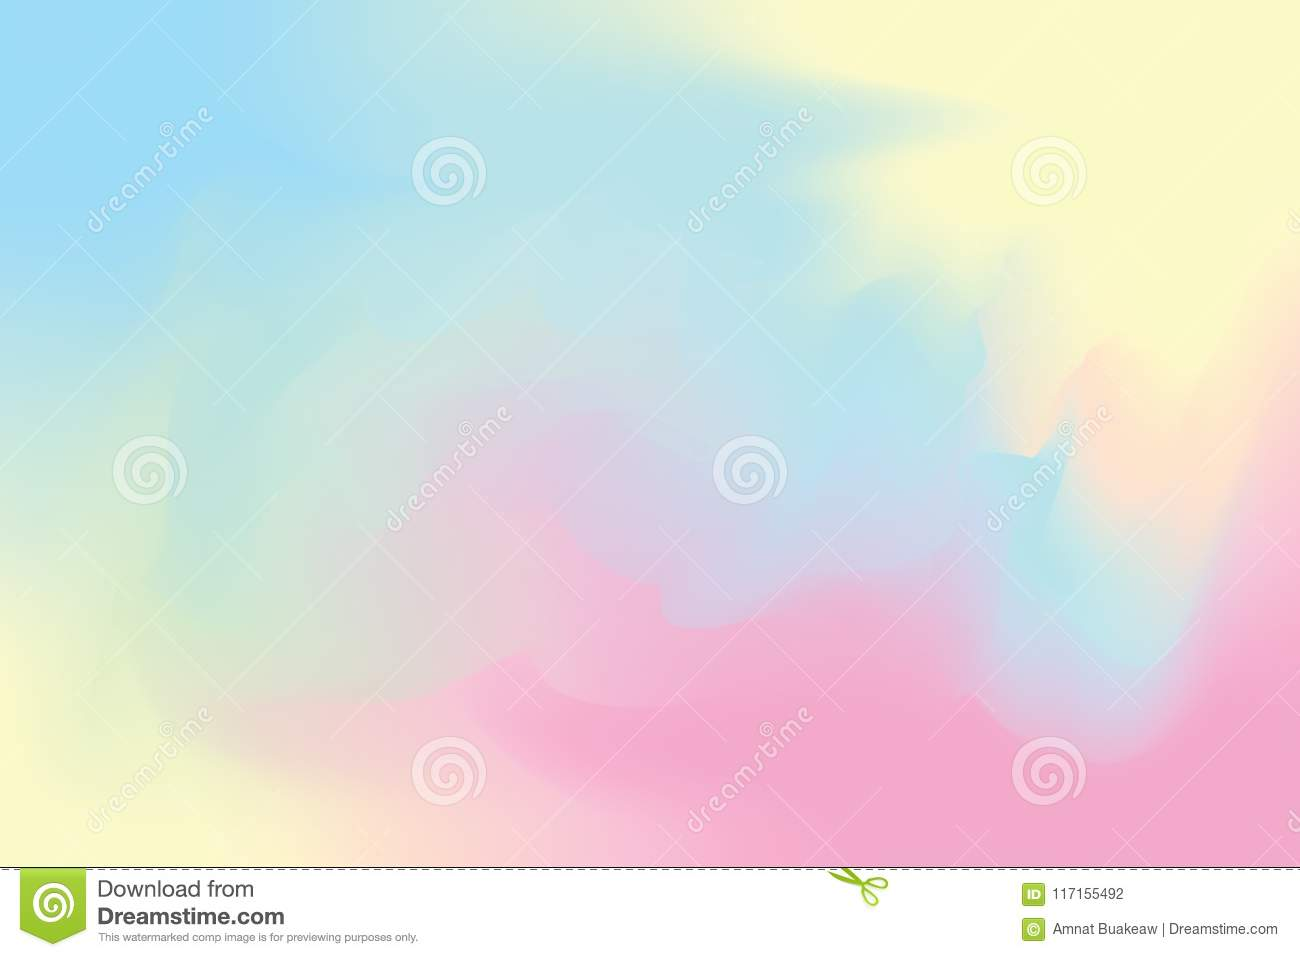 Blue abstract colorful bright color paint brush art background, multi colorful painting art acrylic water color wallpaper pastel